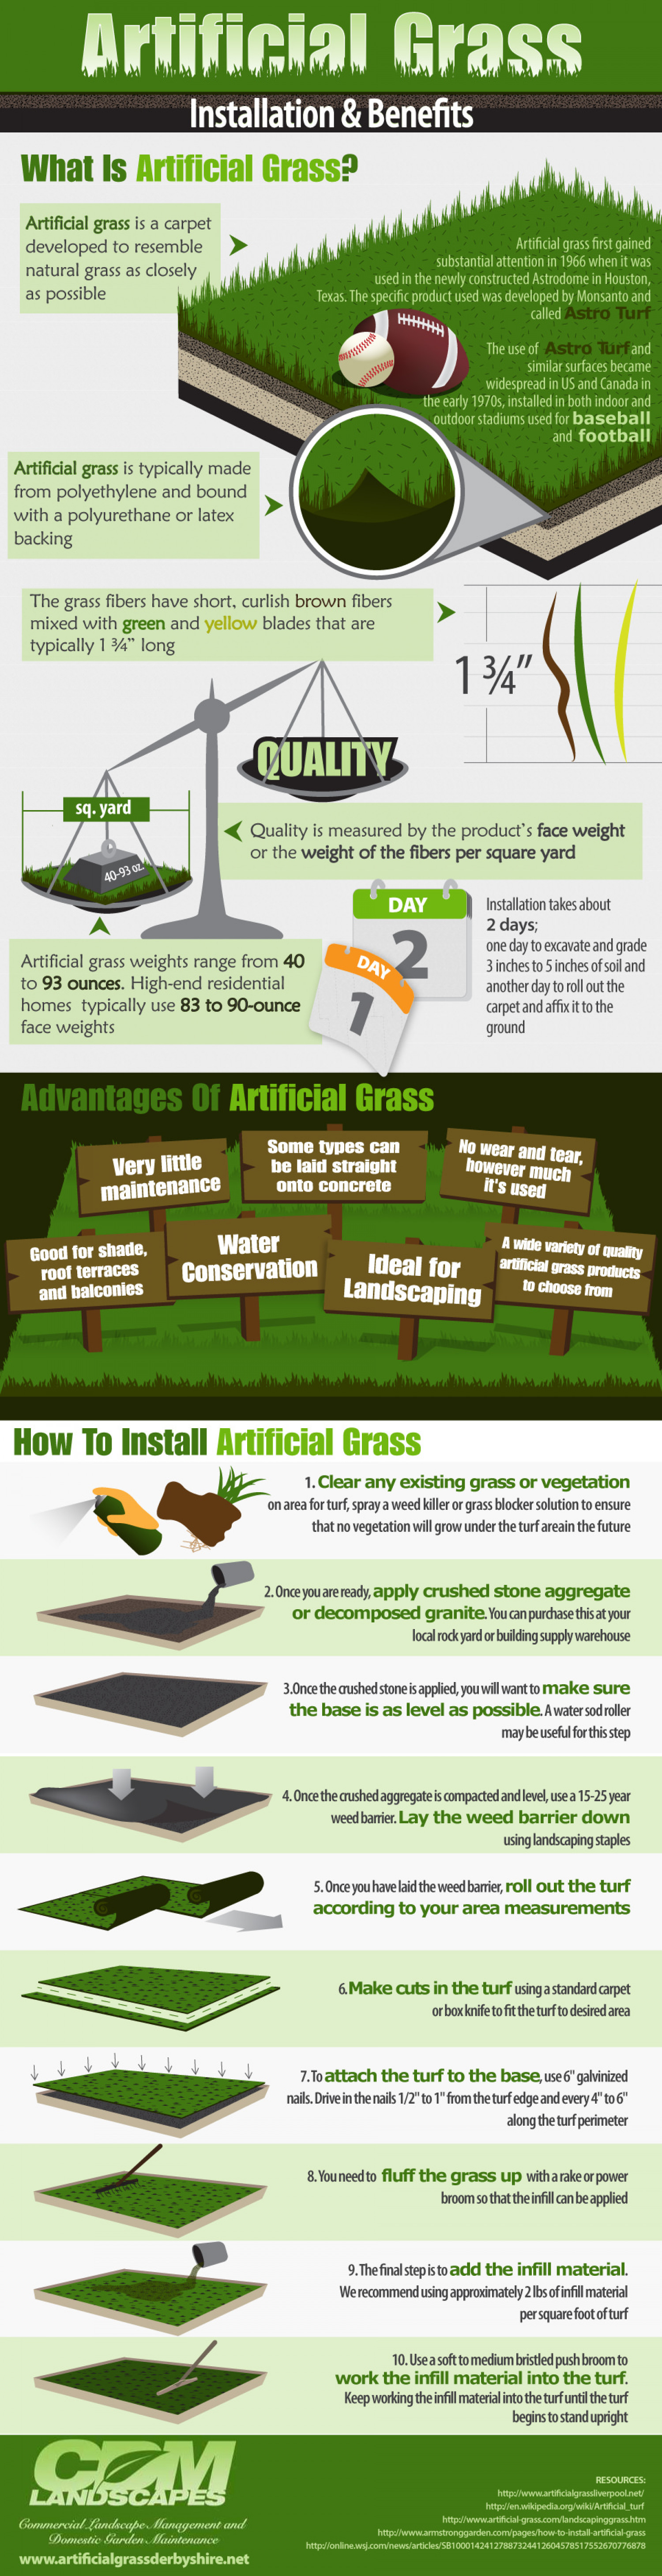 Artificial Grass – Installation and Benefits Infographic